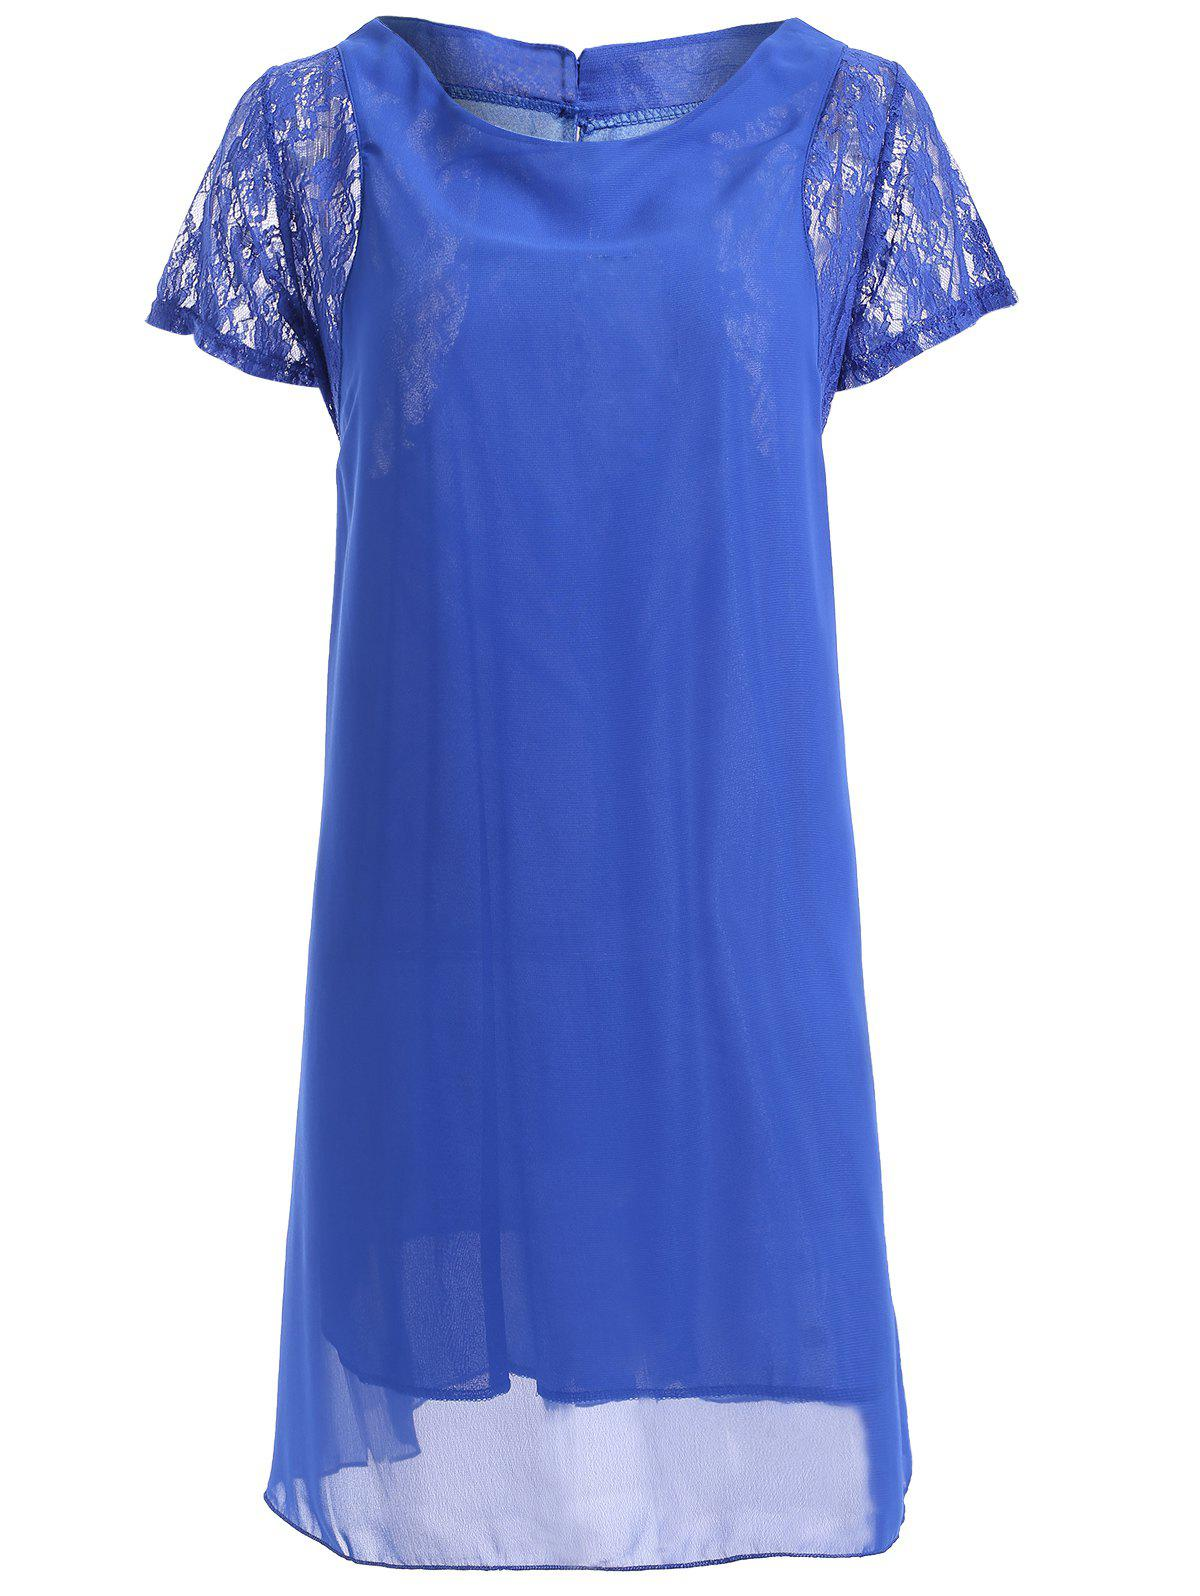 Lace Spliced Short Sleeve Round Neck Chiffon Dress - SAPPHIRE BLUE XL